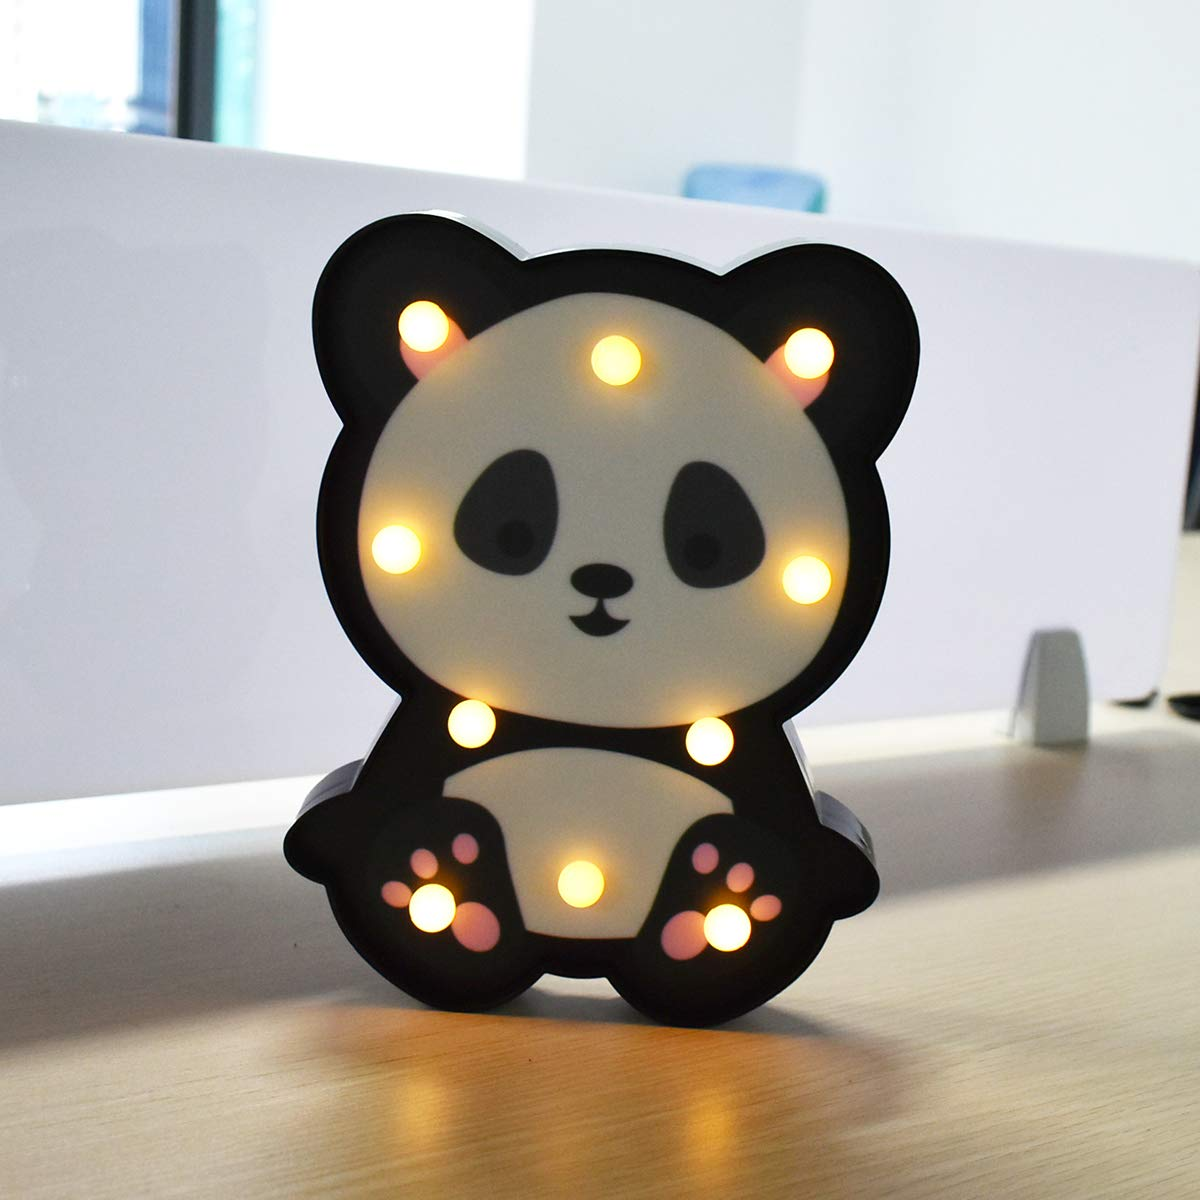 Panda LED Night Light Sign Novelty Animal Decoration Children's Room Bedside Lamp Kids Toy-Battery Operated LED-Portable Baby Kid Sleeping Bedroom LED Glow Nursery Lamps- Panda by Worpee